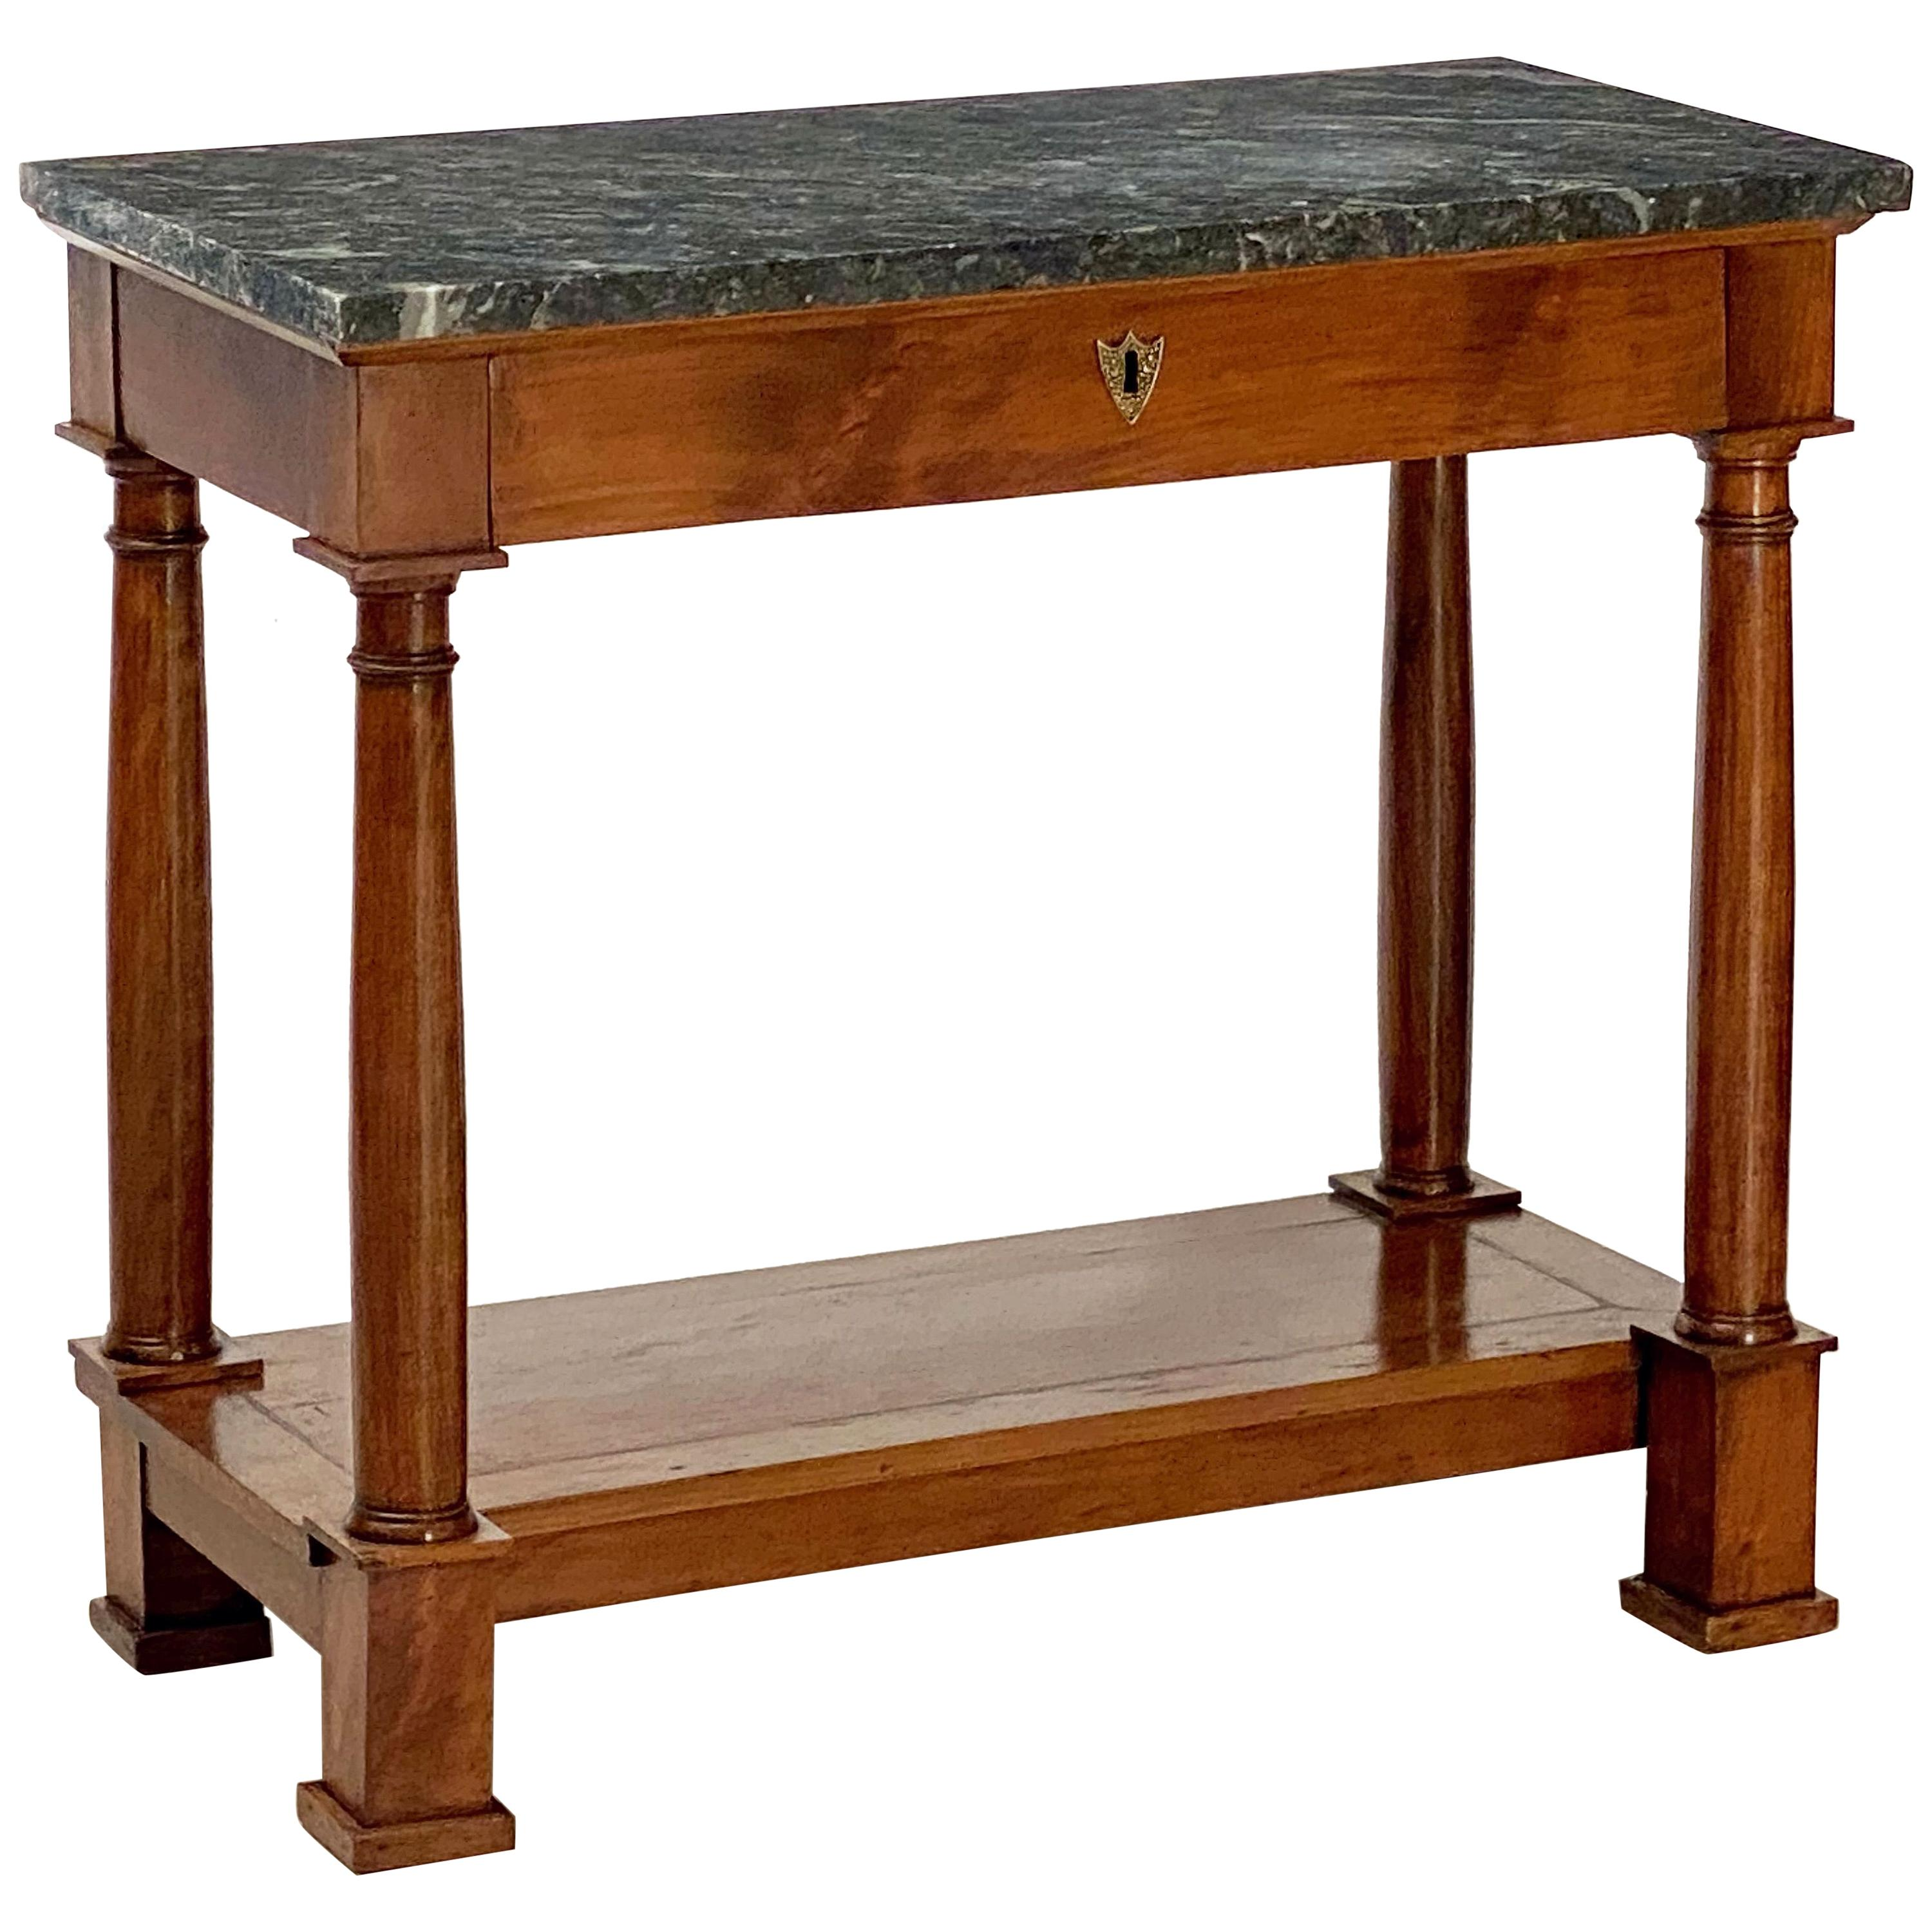 French Empire Console Table of Mahogany with Marble Top